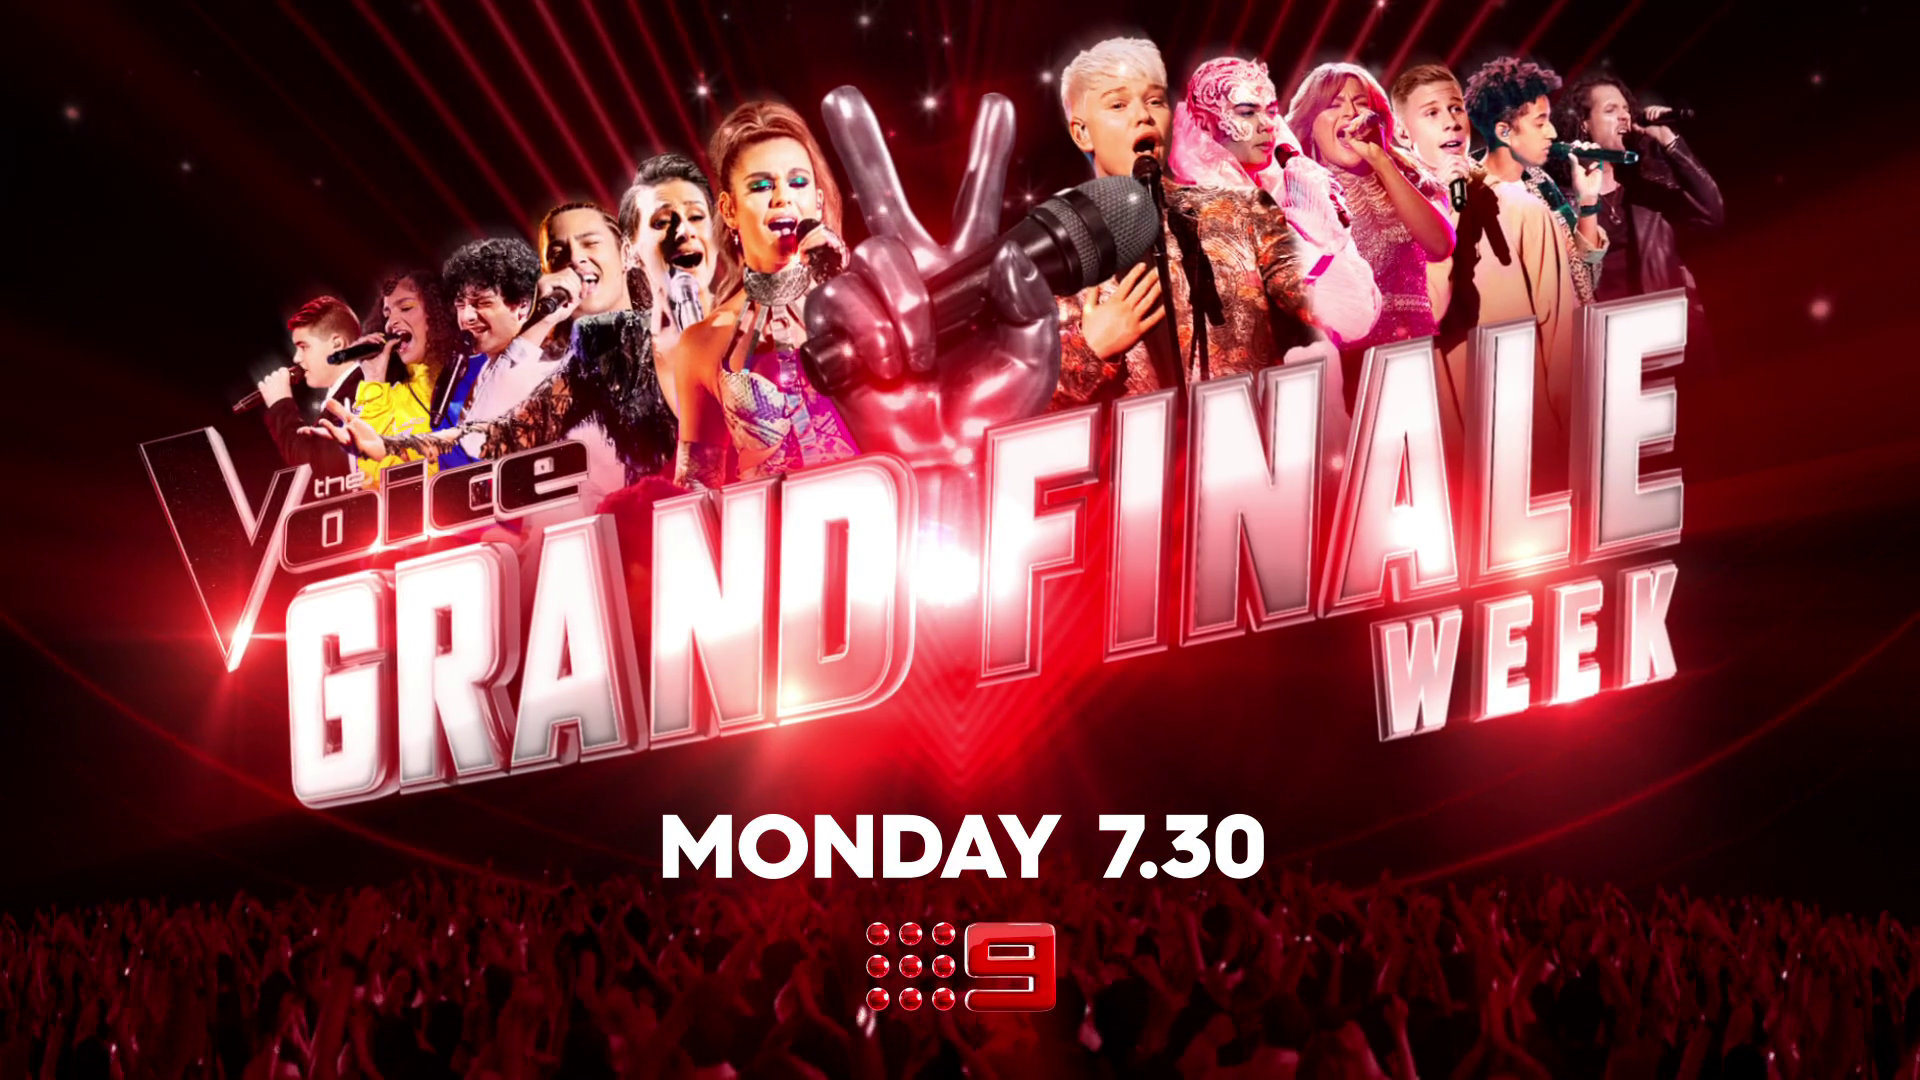 It's our most ELECTRIFYING Grand Finale Week ever